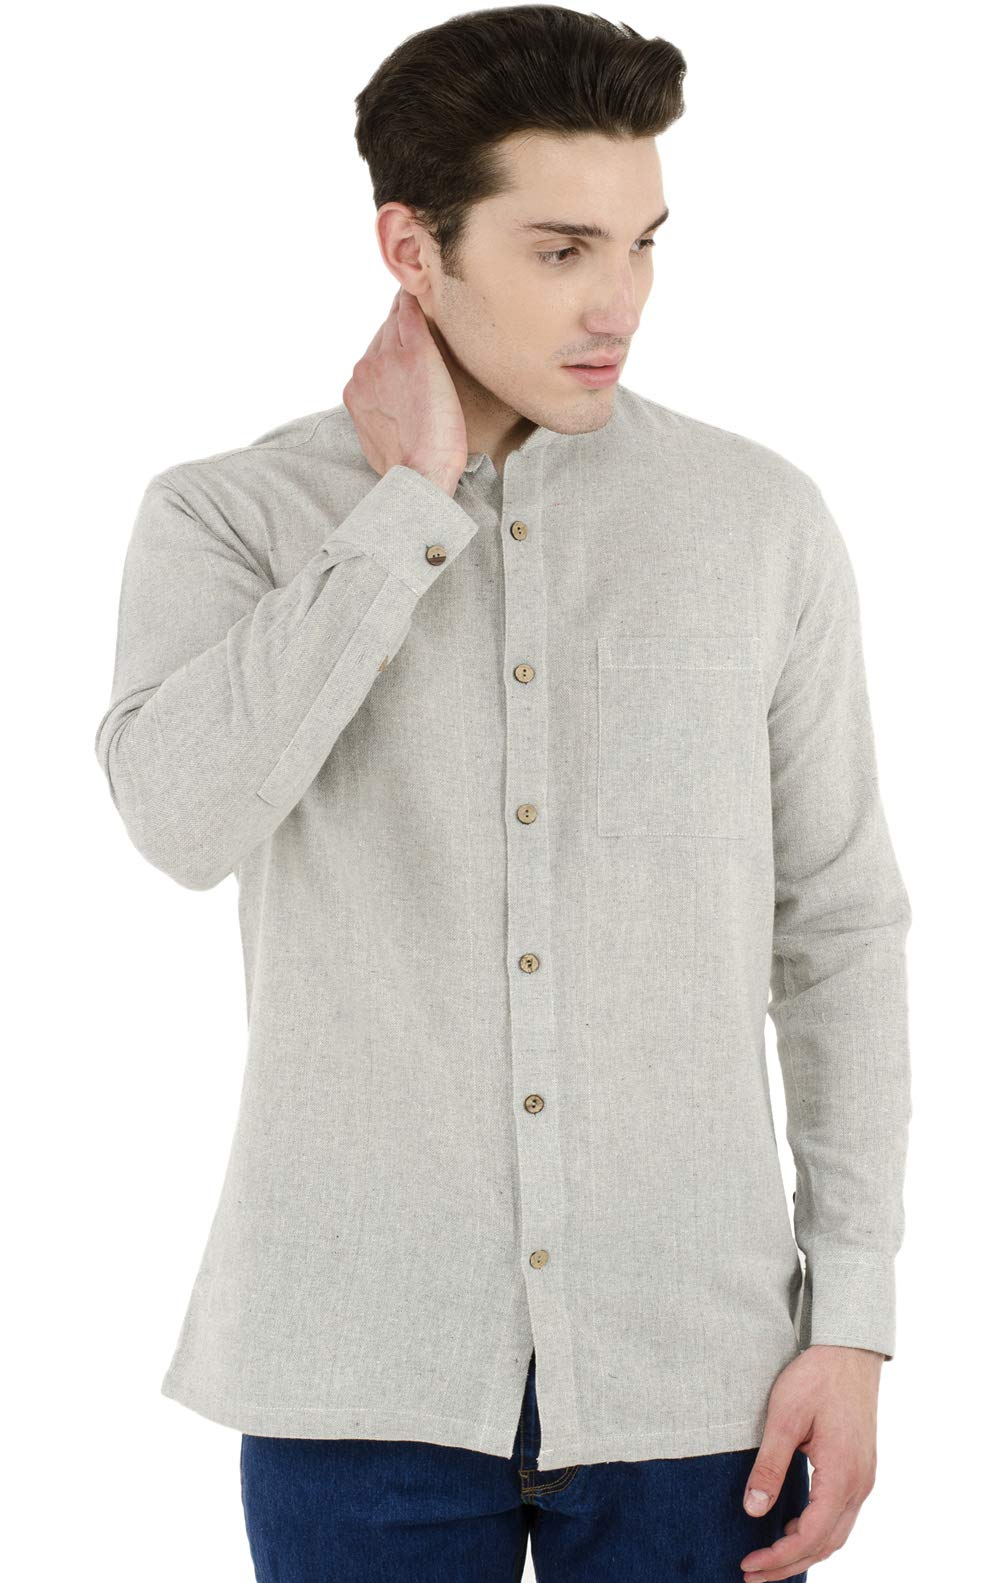 SKAVIJ Button Down Shirts for Men Cotton Long Sleeve Casual Shirts Regular Fit Grey